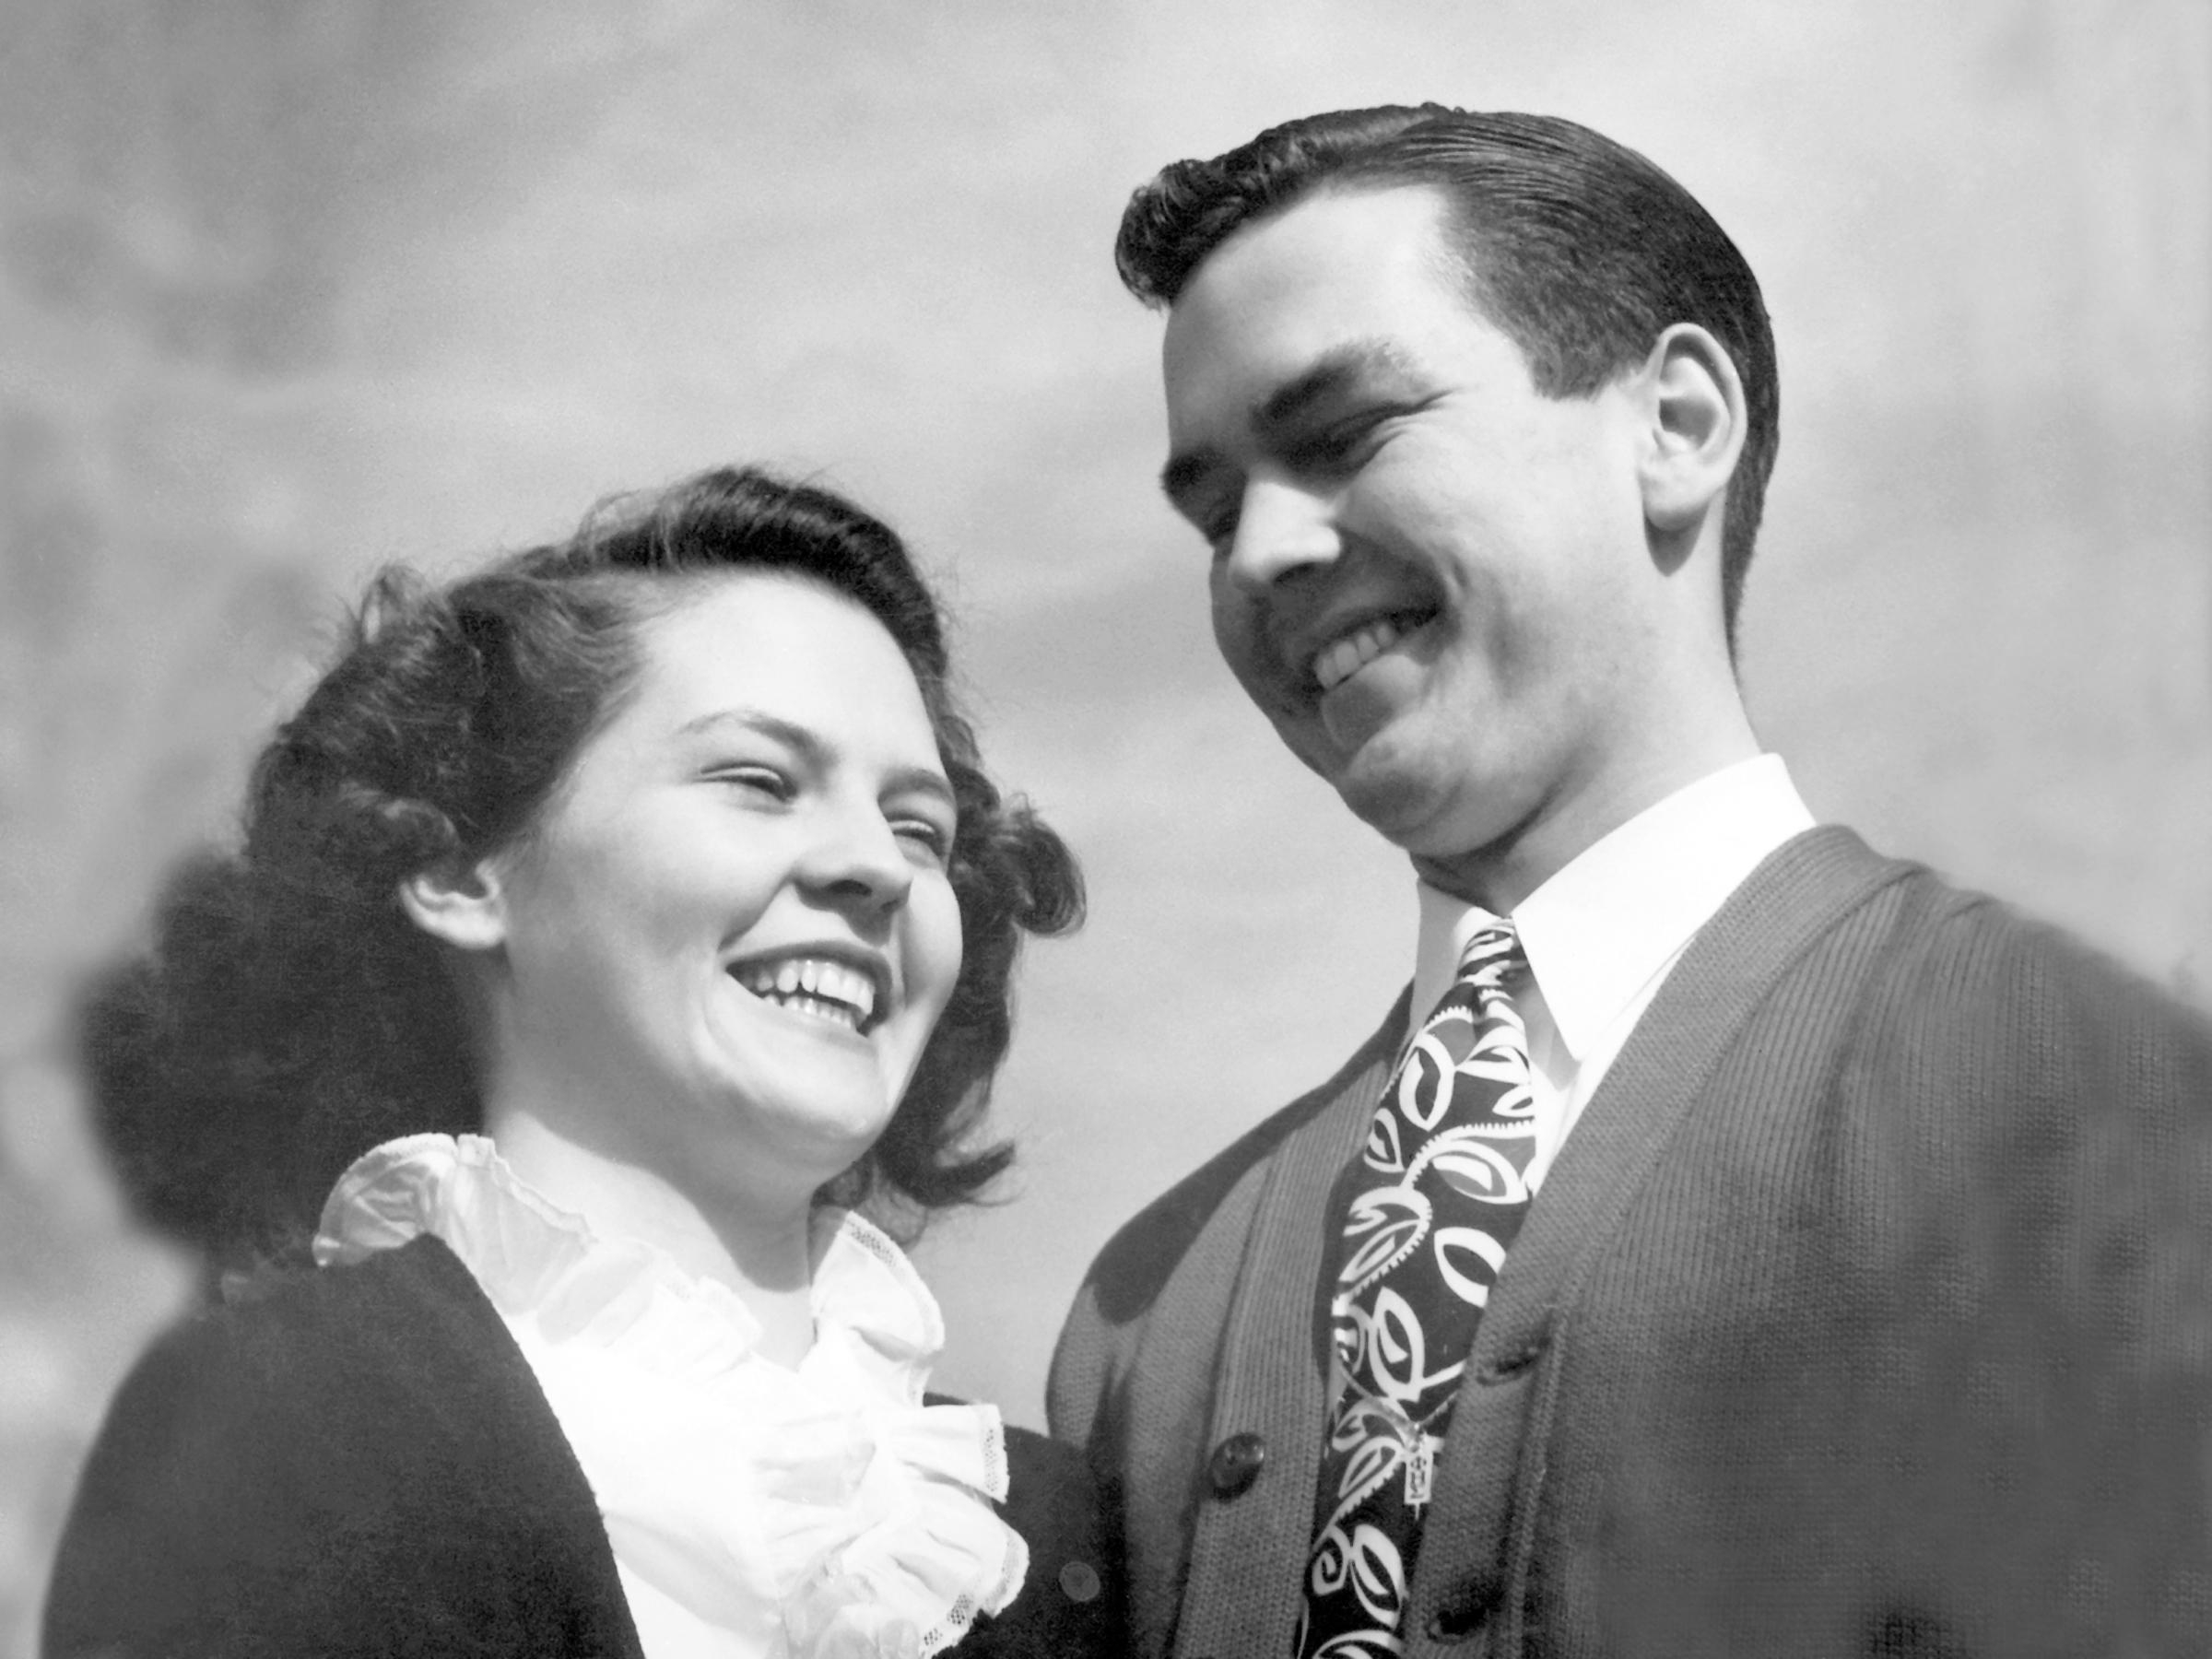 Russell and his first wife, Dantzel Nelson, at the University of Utah in 1942.